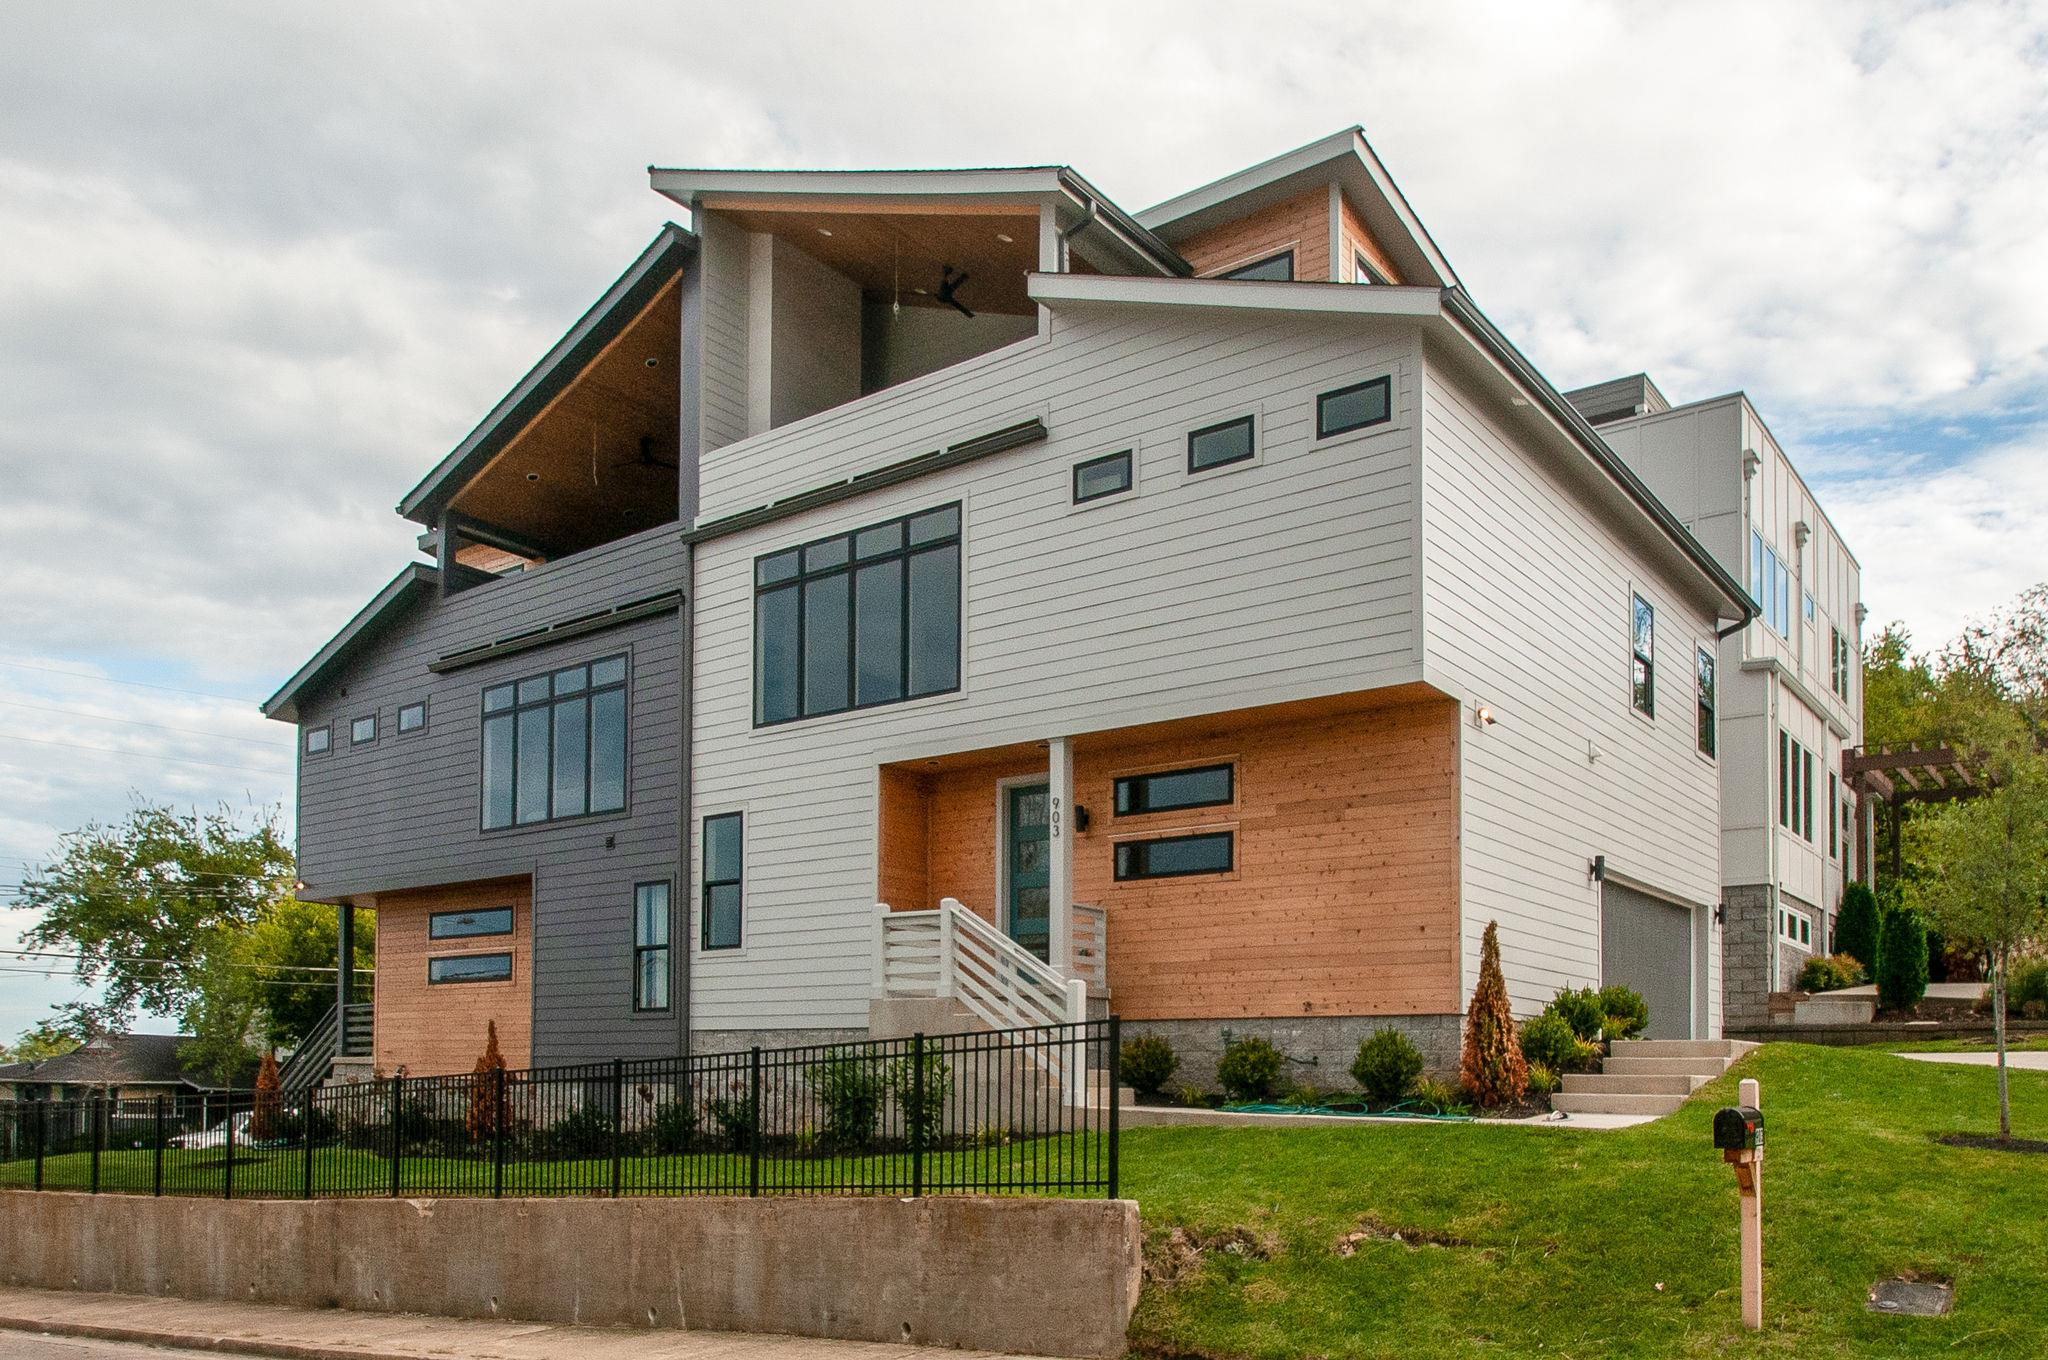 Modern 3 story home in Gulchview - walk to all the Gulch hotspots! Contemporary finishes, 2 car garage, 3rd floor bonus AND guest room w/ full bath! Covered rooftop deck with modern gas fireplace w/ incredible downtown views - perfect for entertaining!